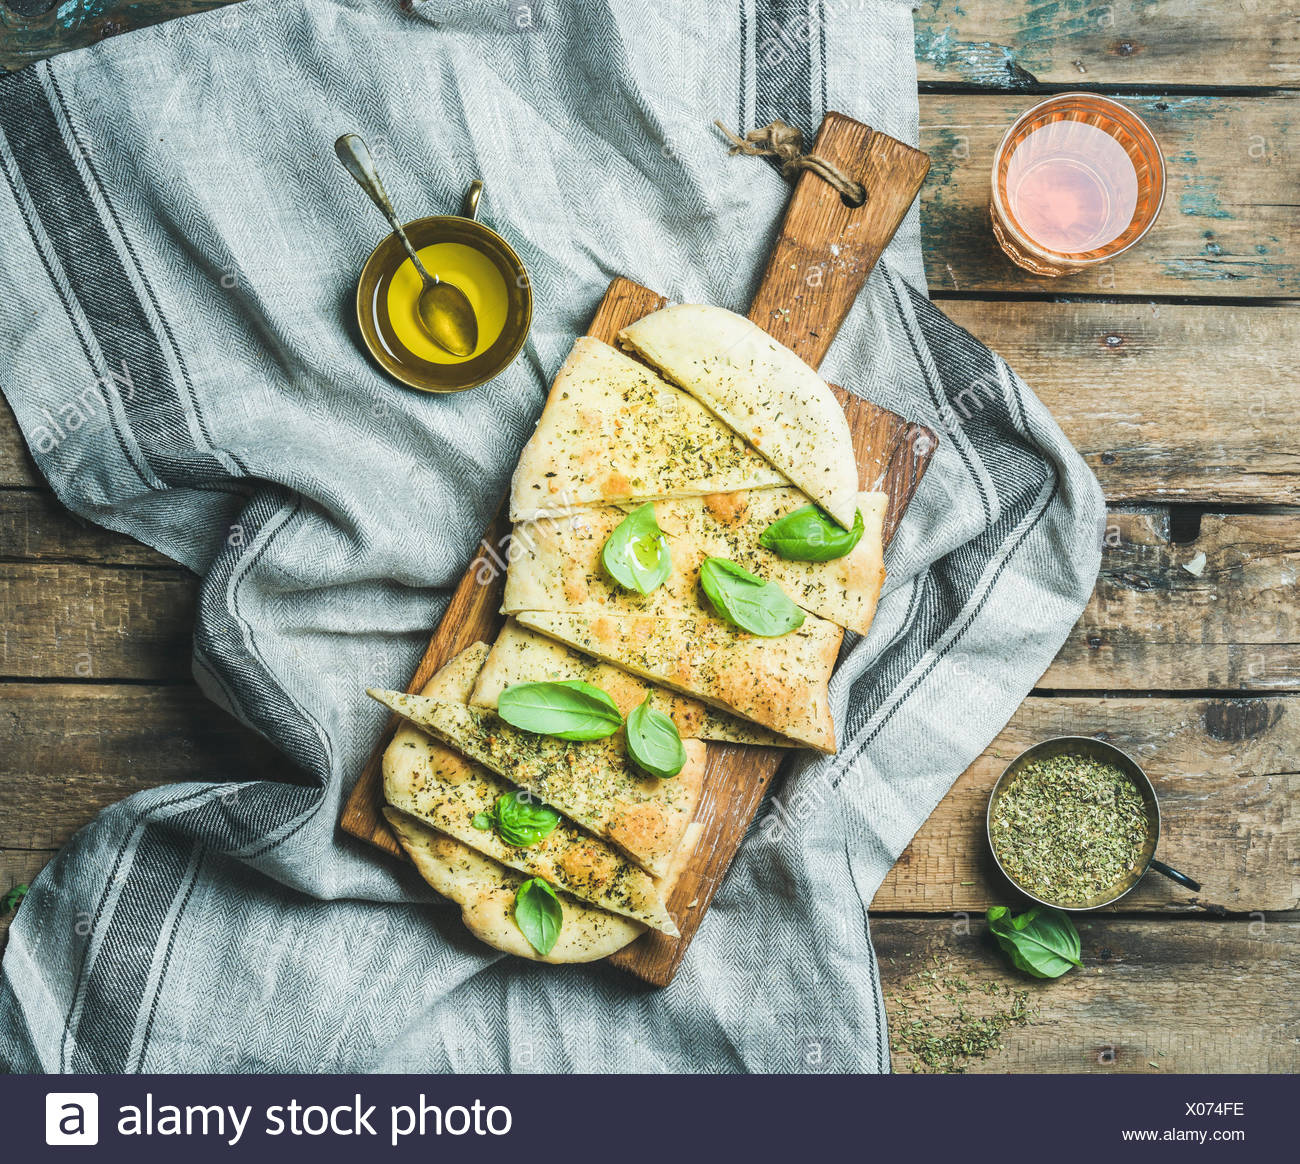 Homemade Italian focaccia flatbread cut into pieces with herbs, fresh basil leaves, olive oil and glass of rose wine on rustic s - Stock Image